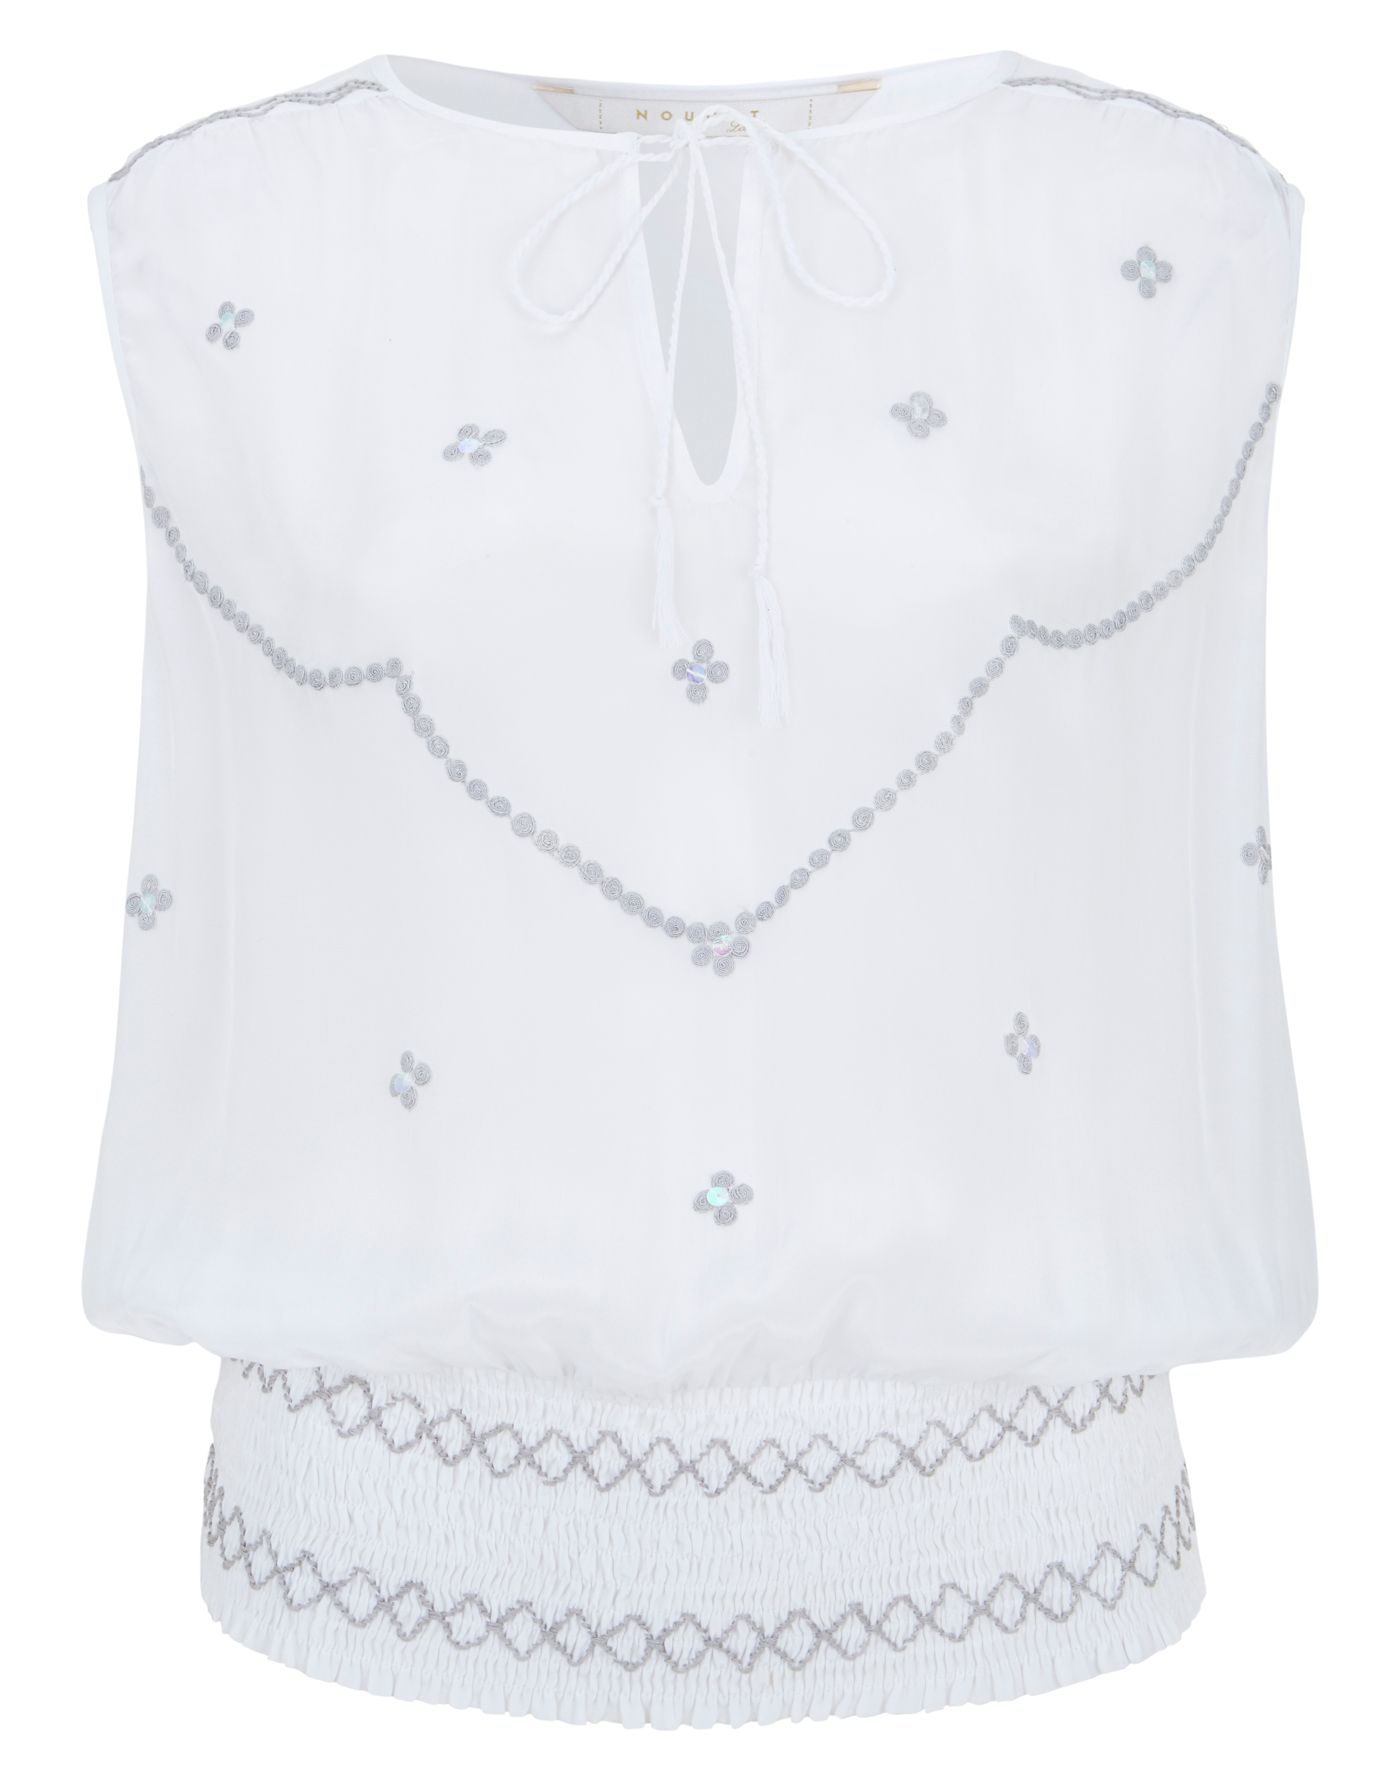 Smocked hem embroidery top